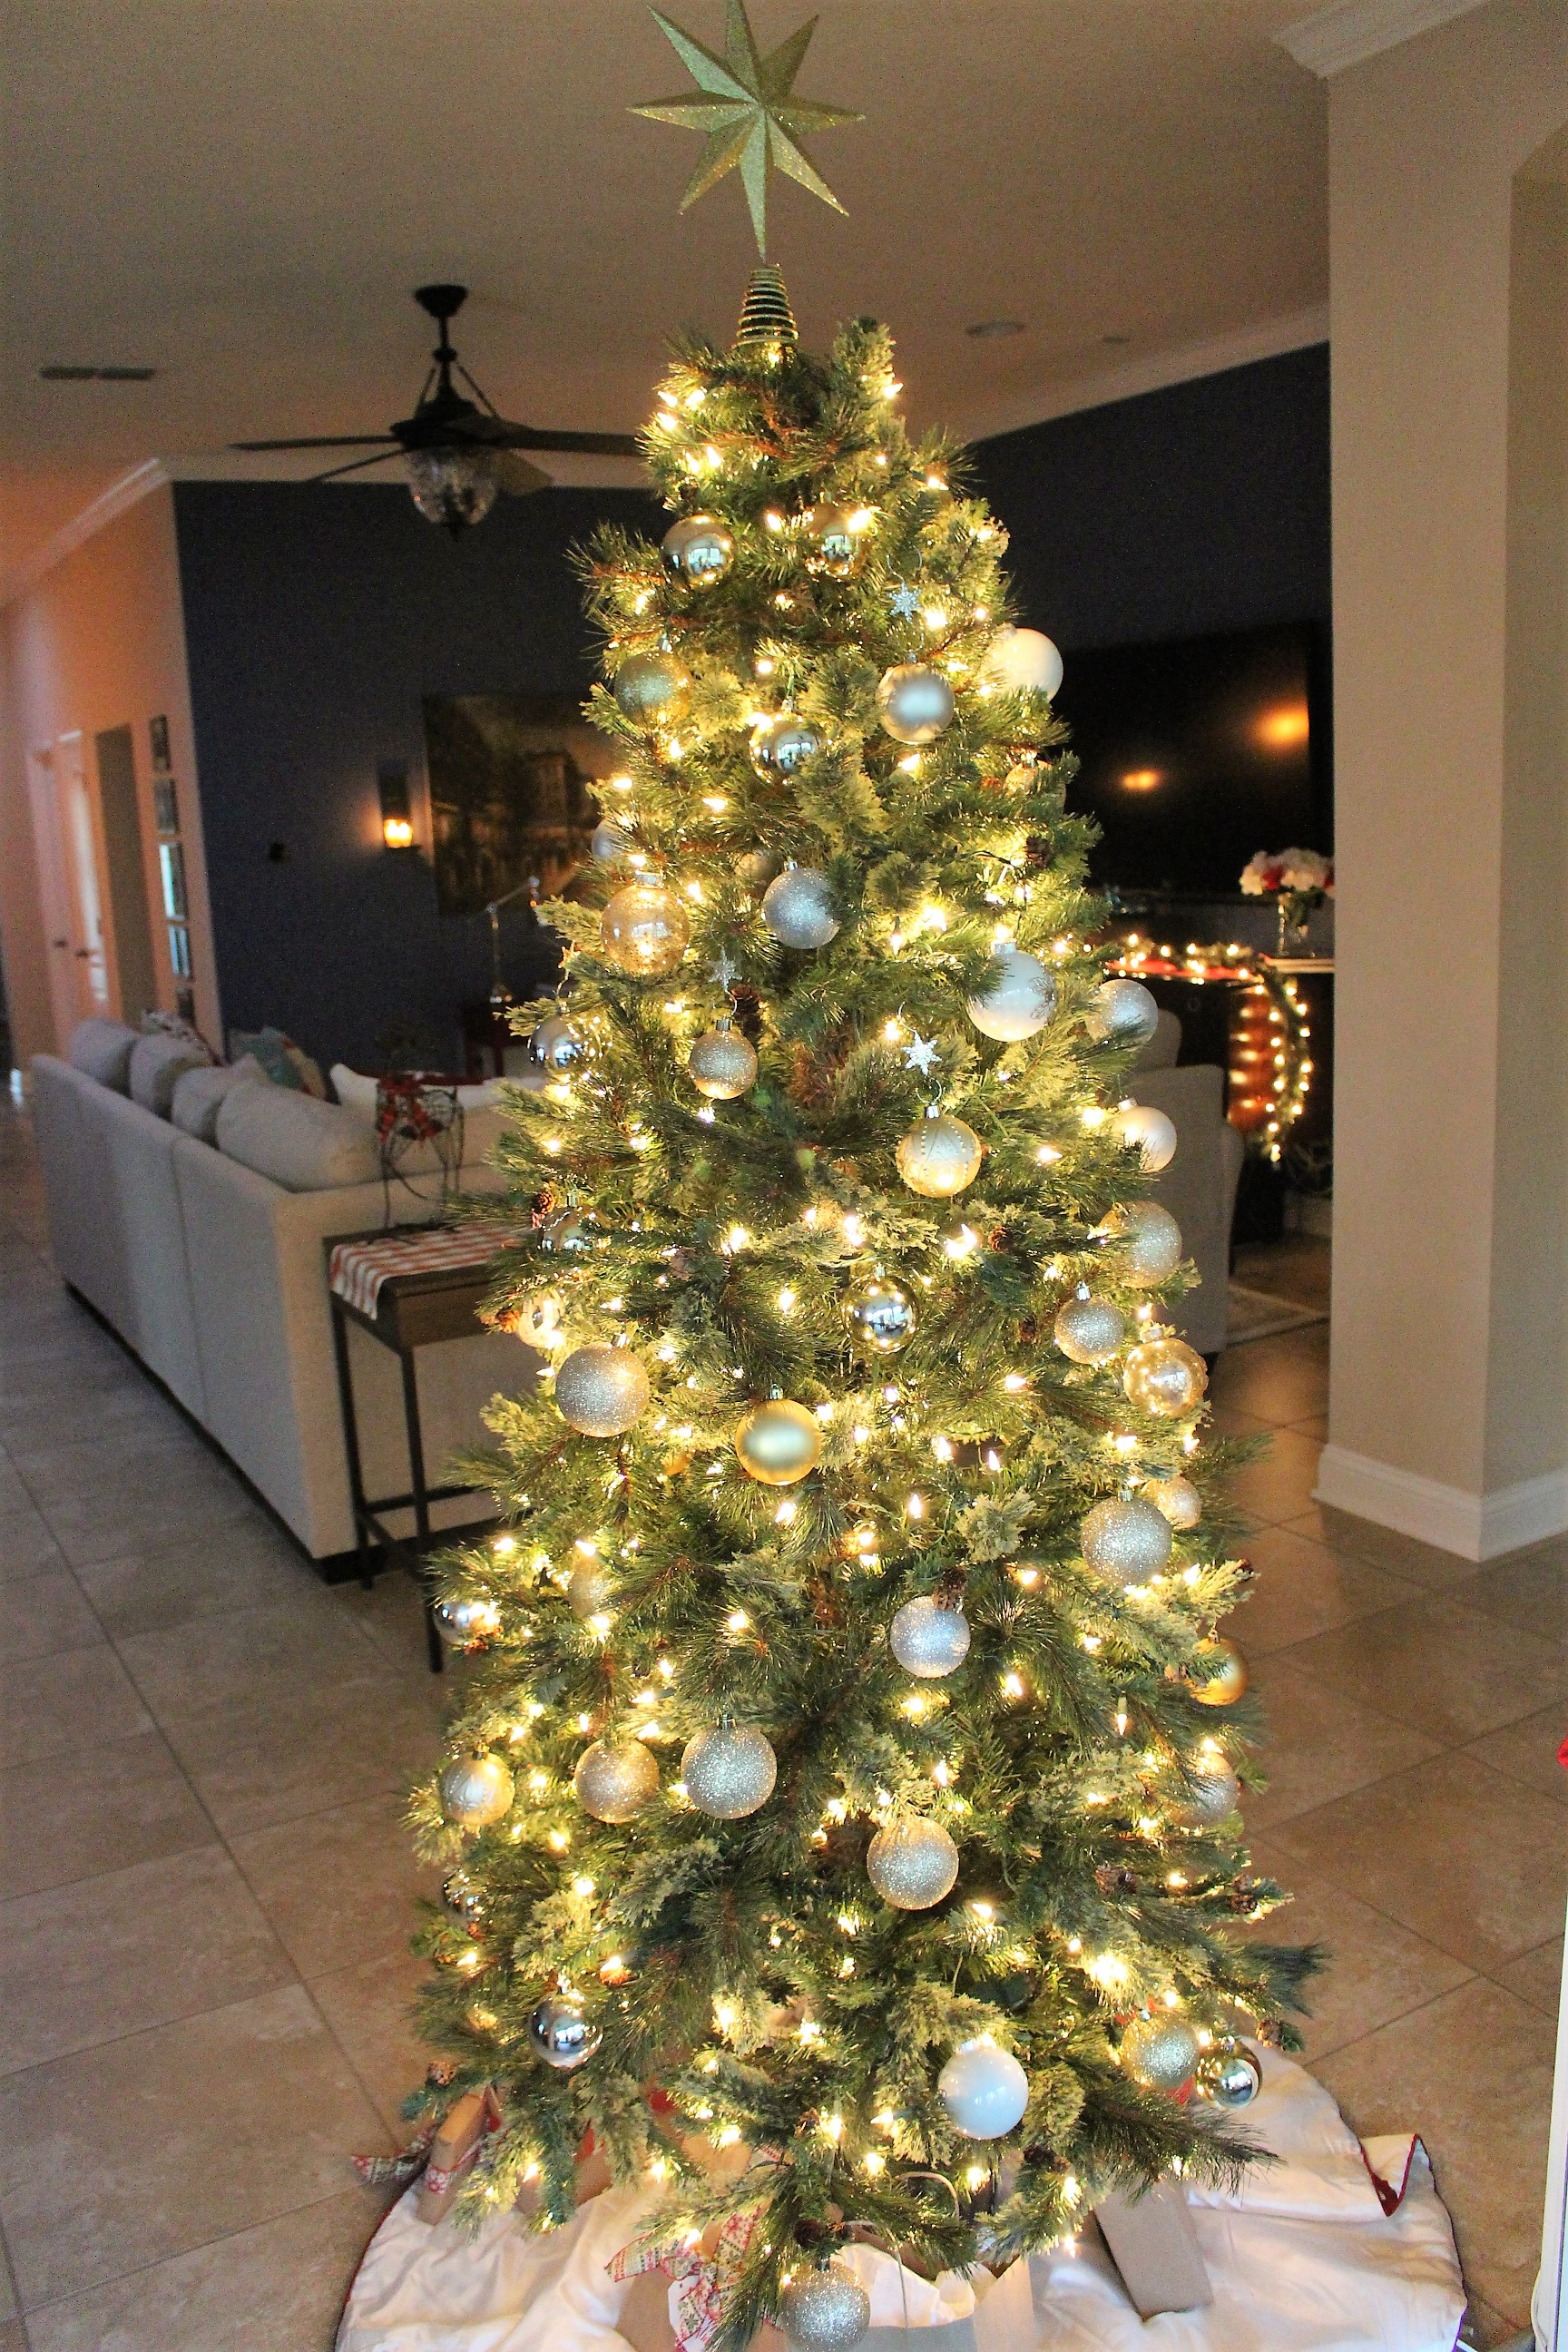 360 degrees of Christmas Tree